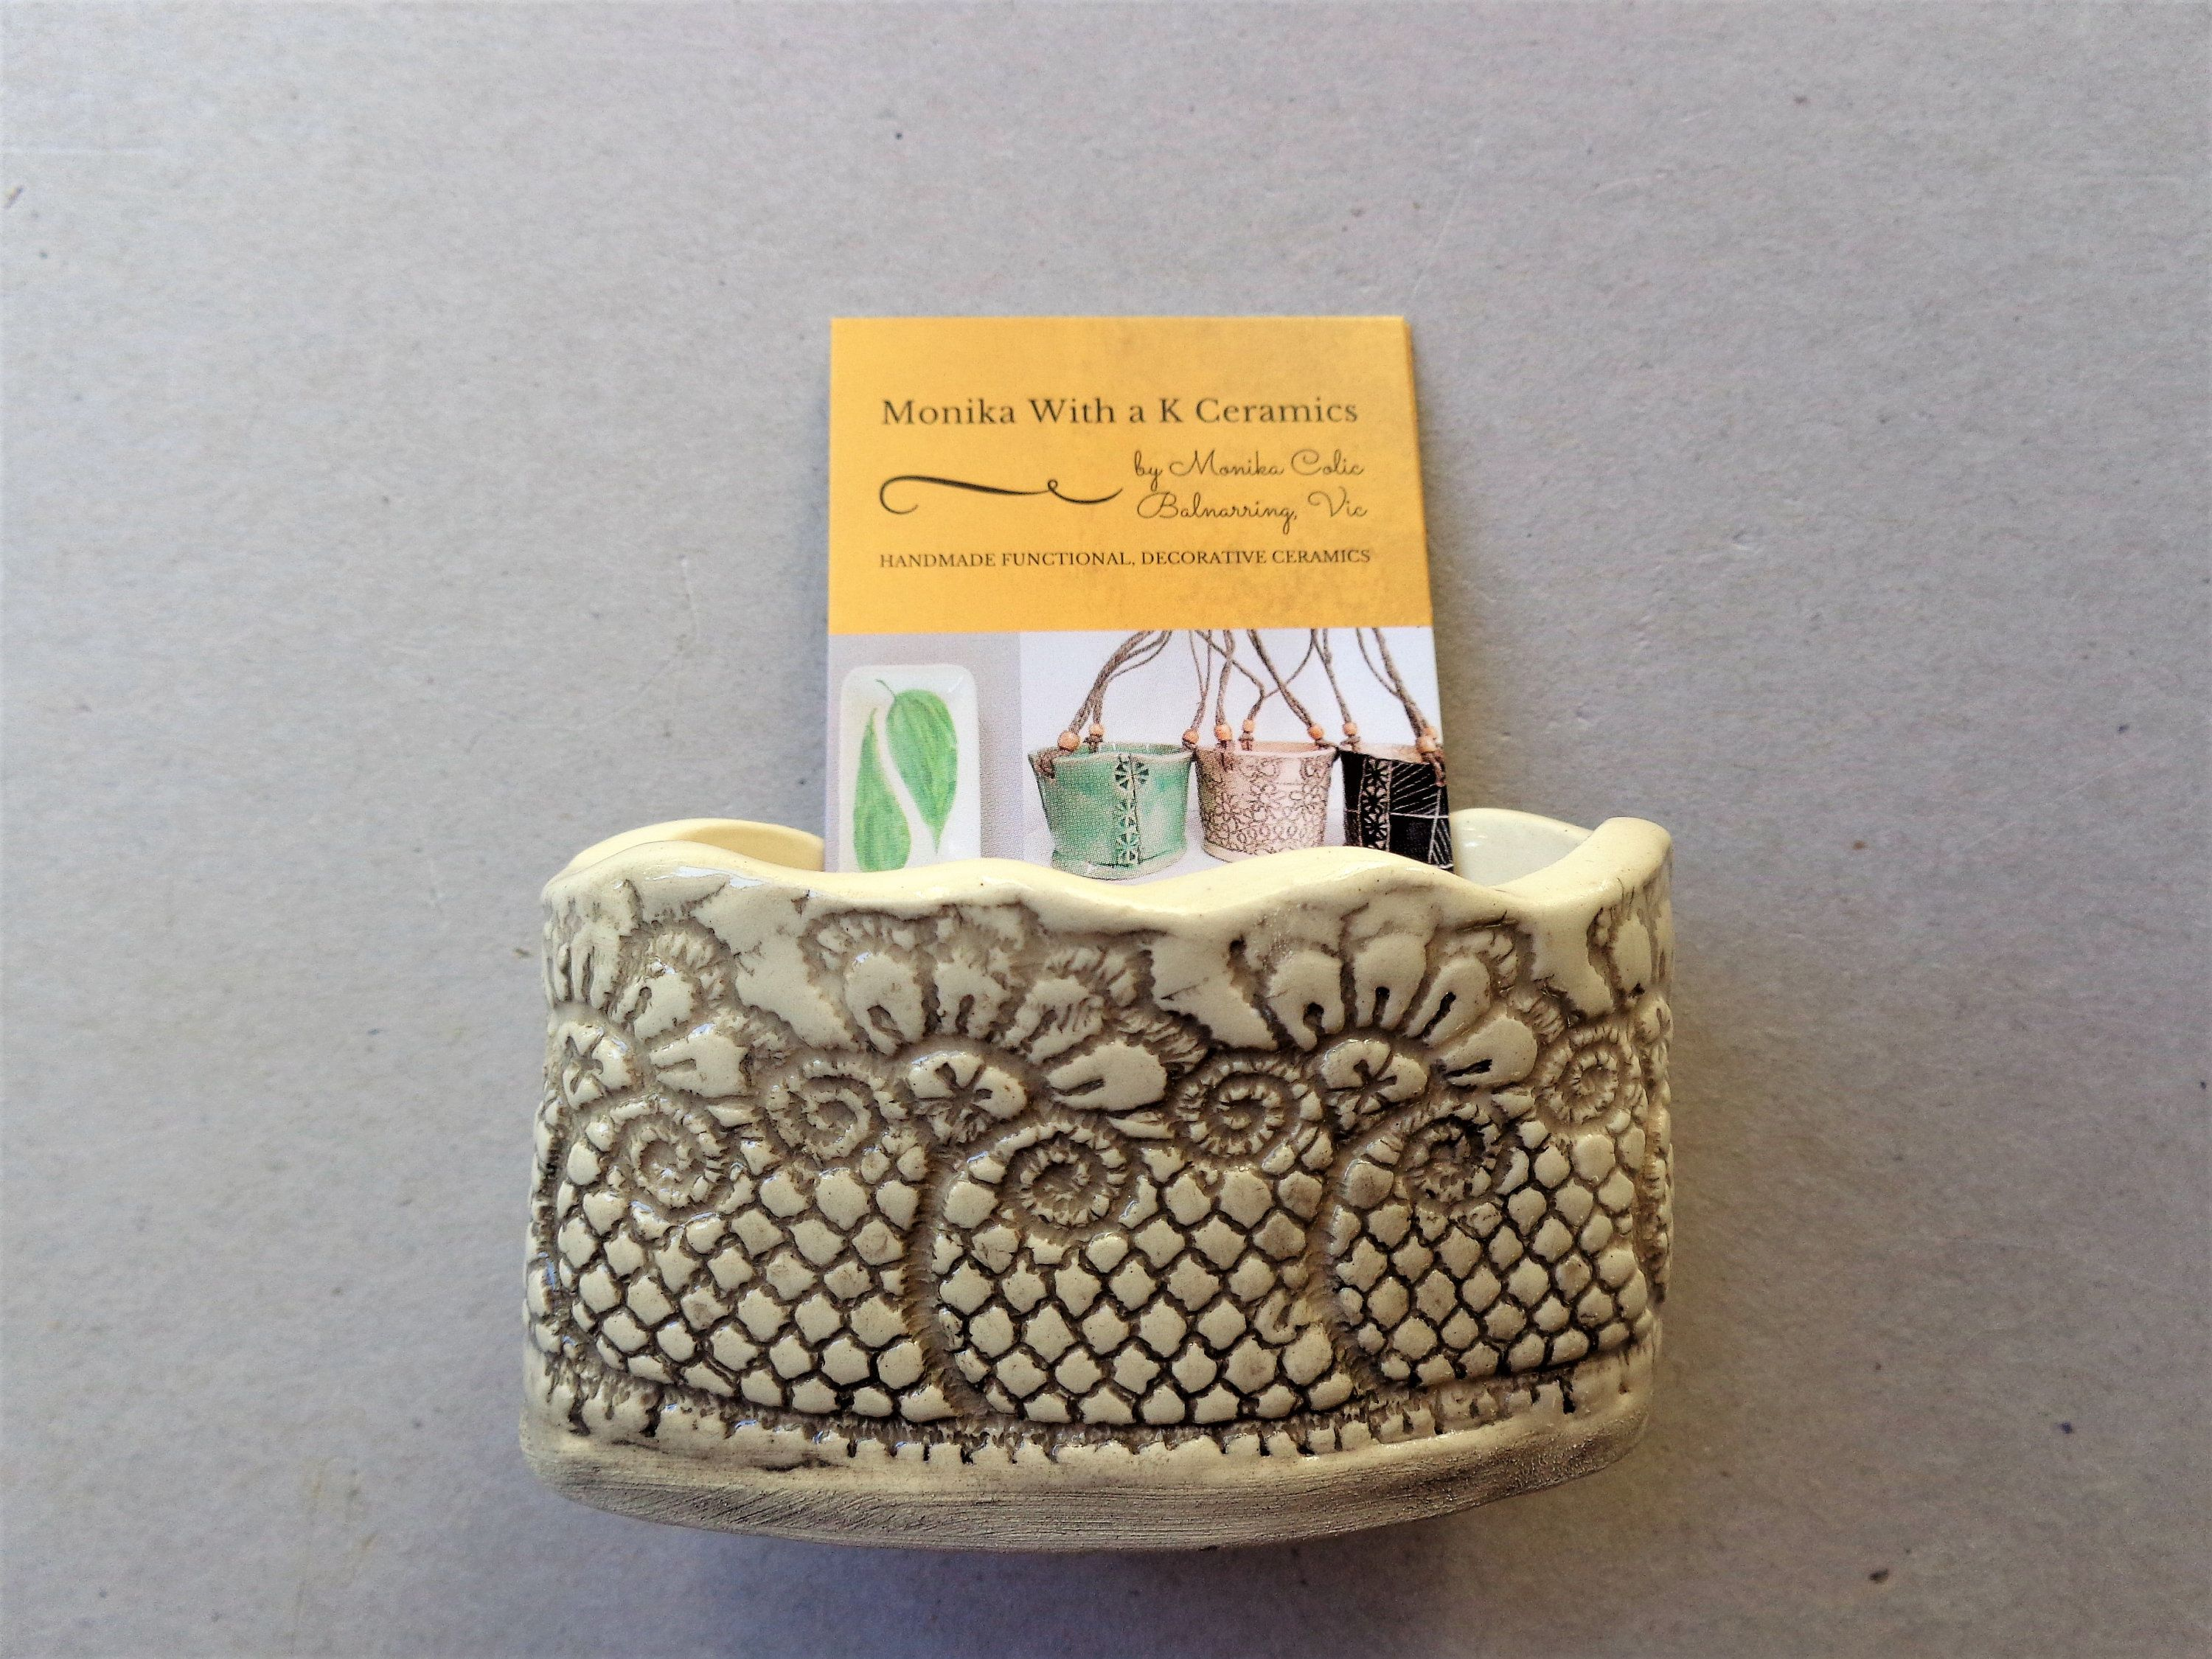 Lace textured ceramic business card holder, home office desk decor ...